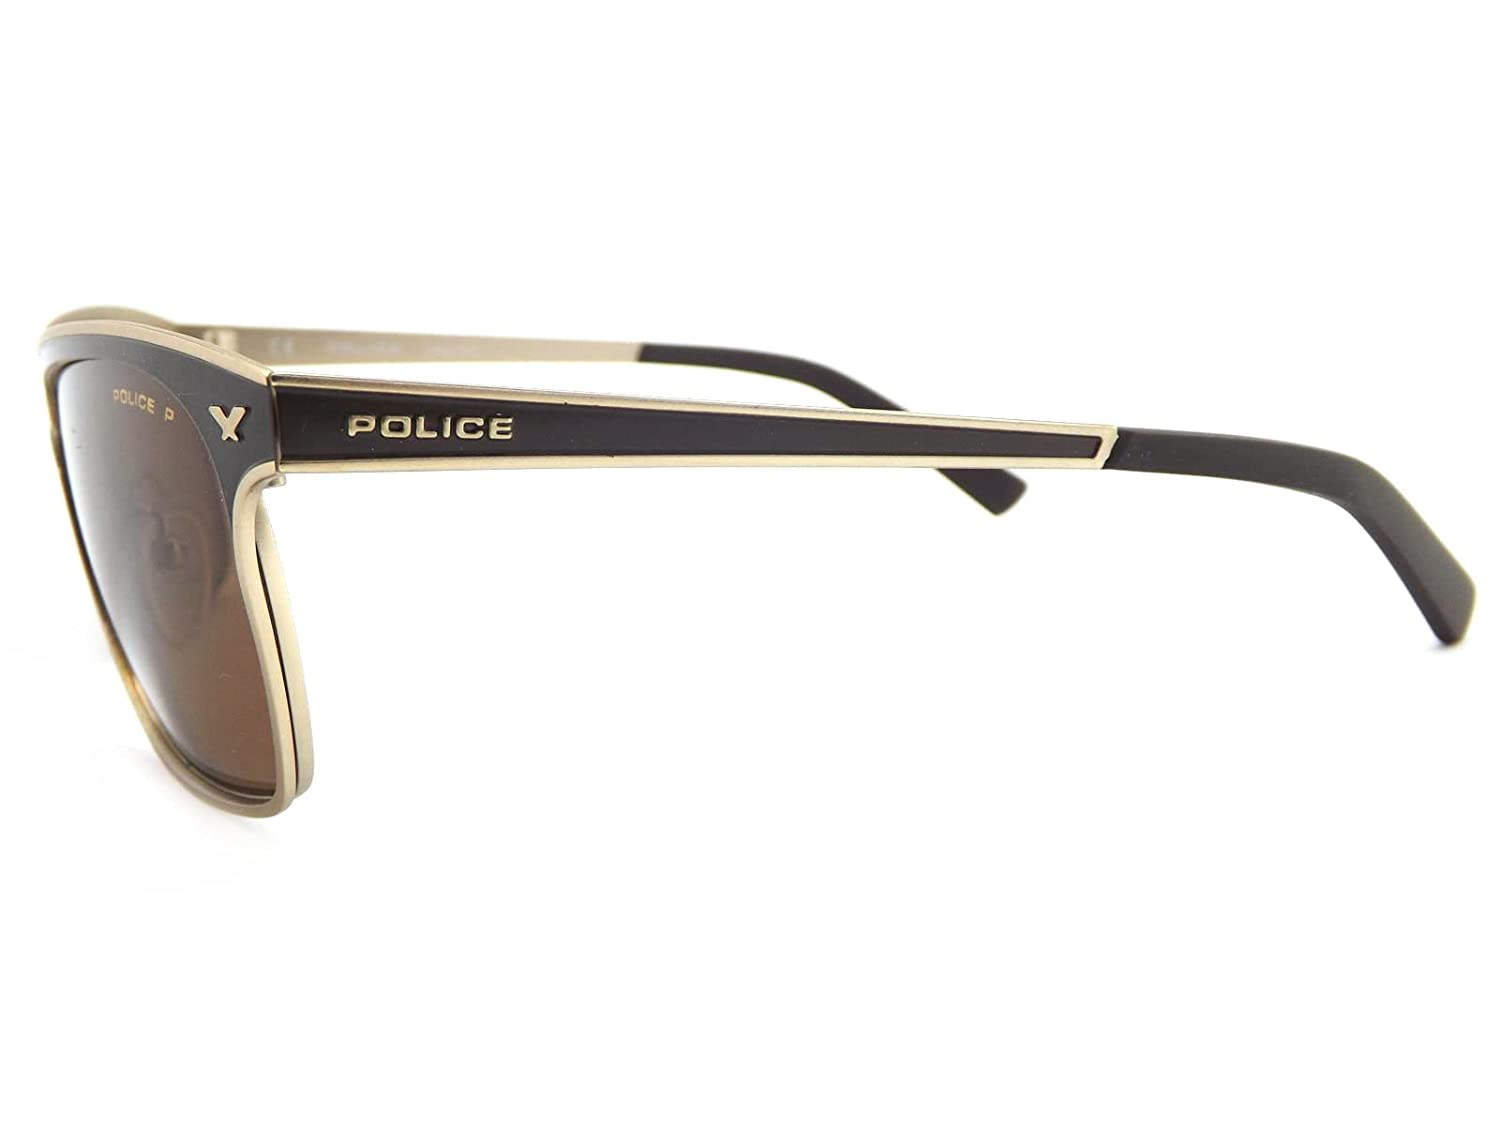 25080121a16 Police History 1 Polarized Sunglasses Matte Brown Gold S8948 369P   Amazon.co.uk  Clothing